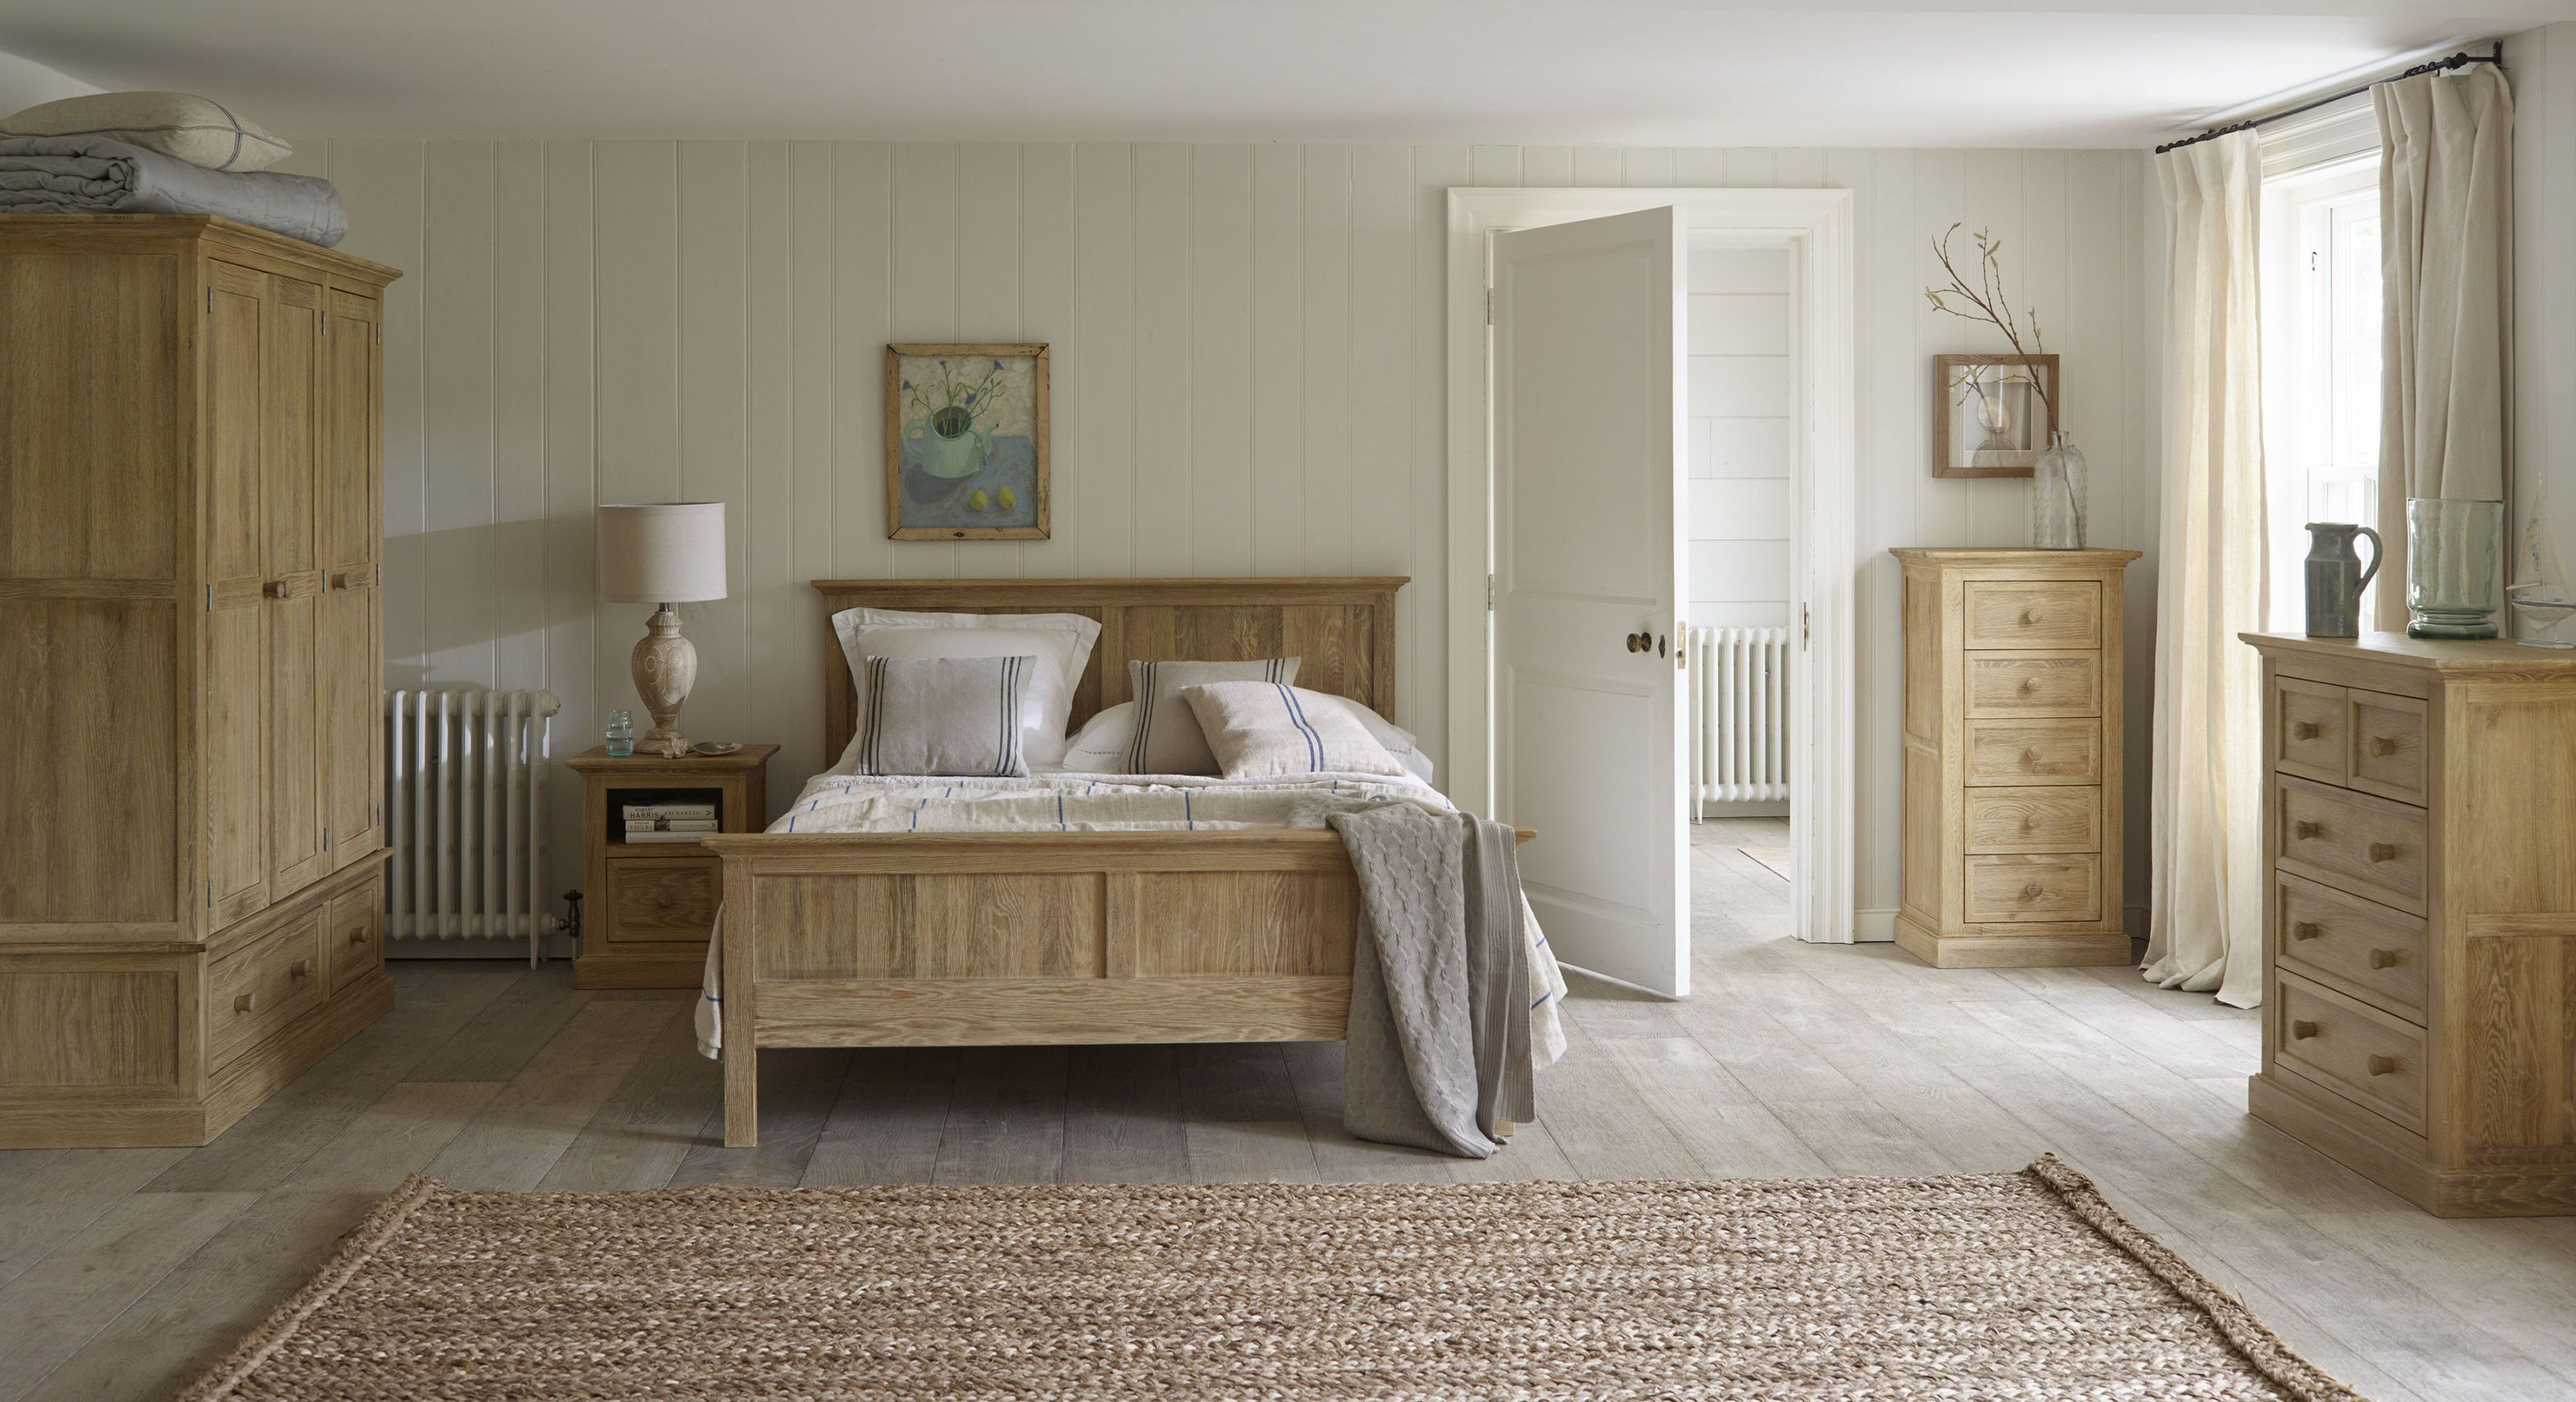 oak furniture, solid oak